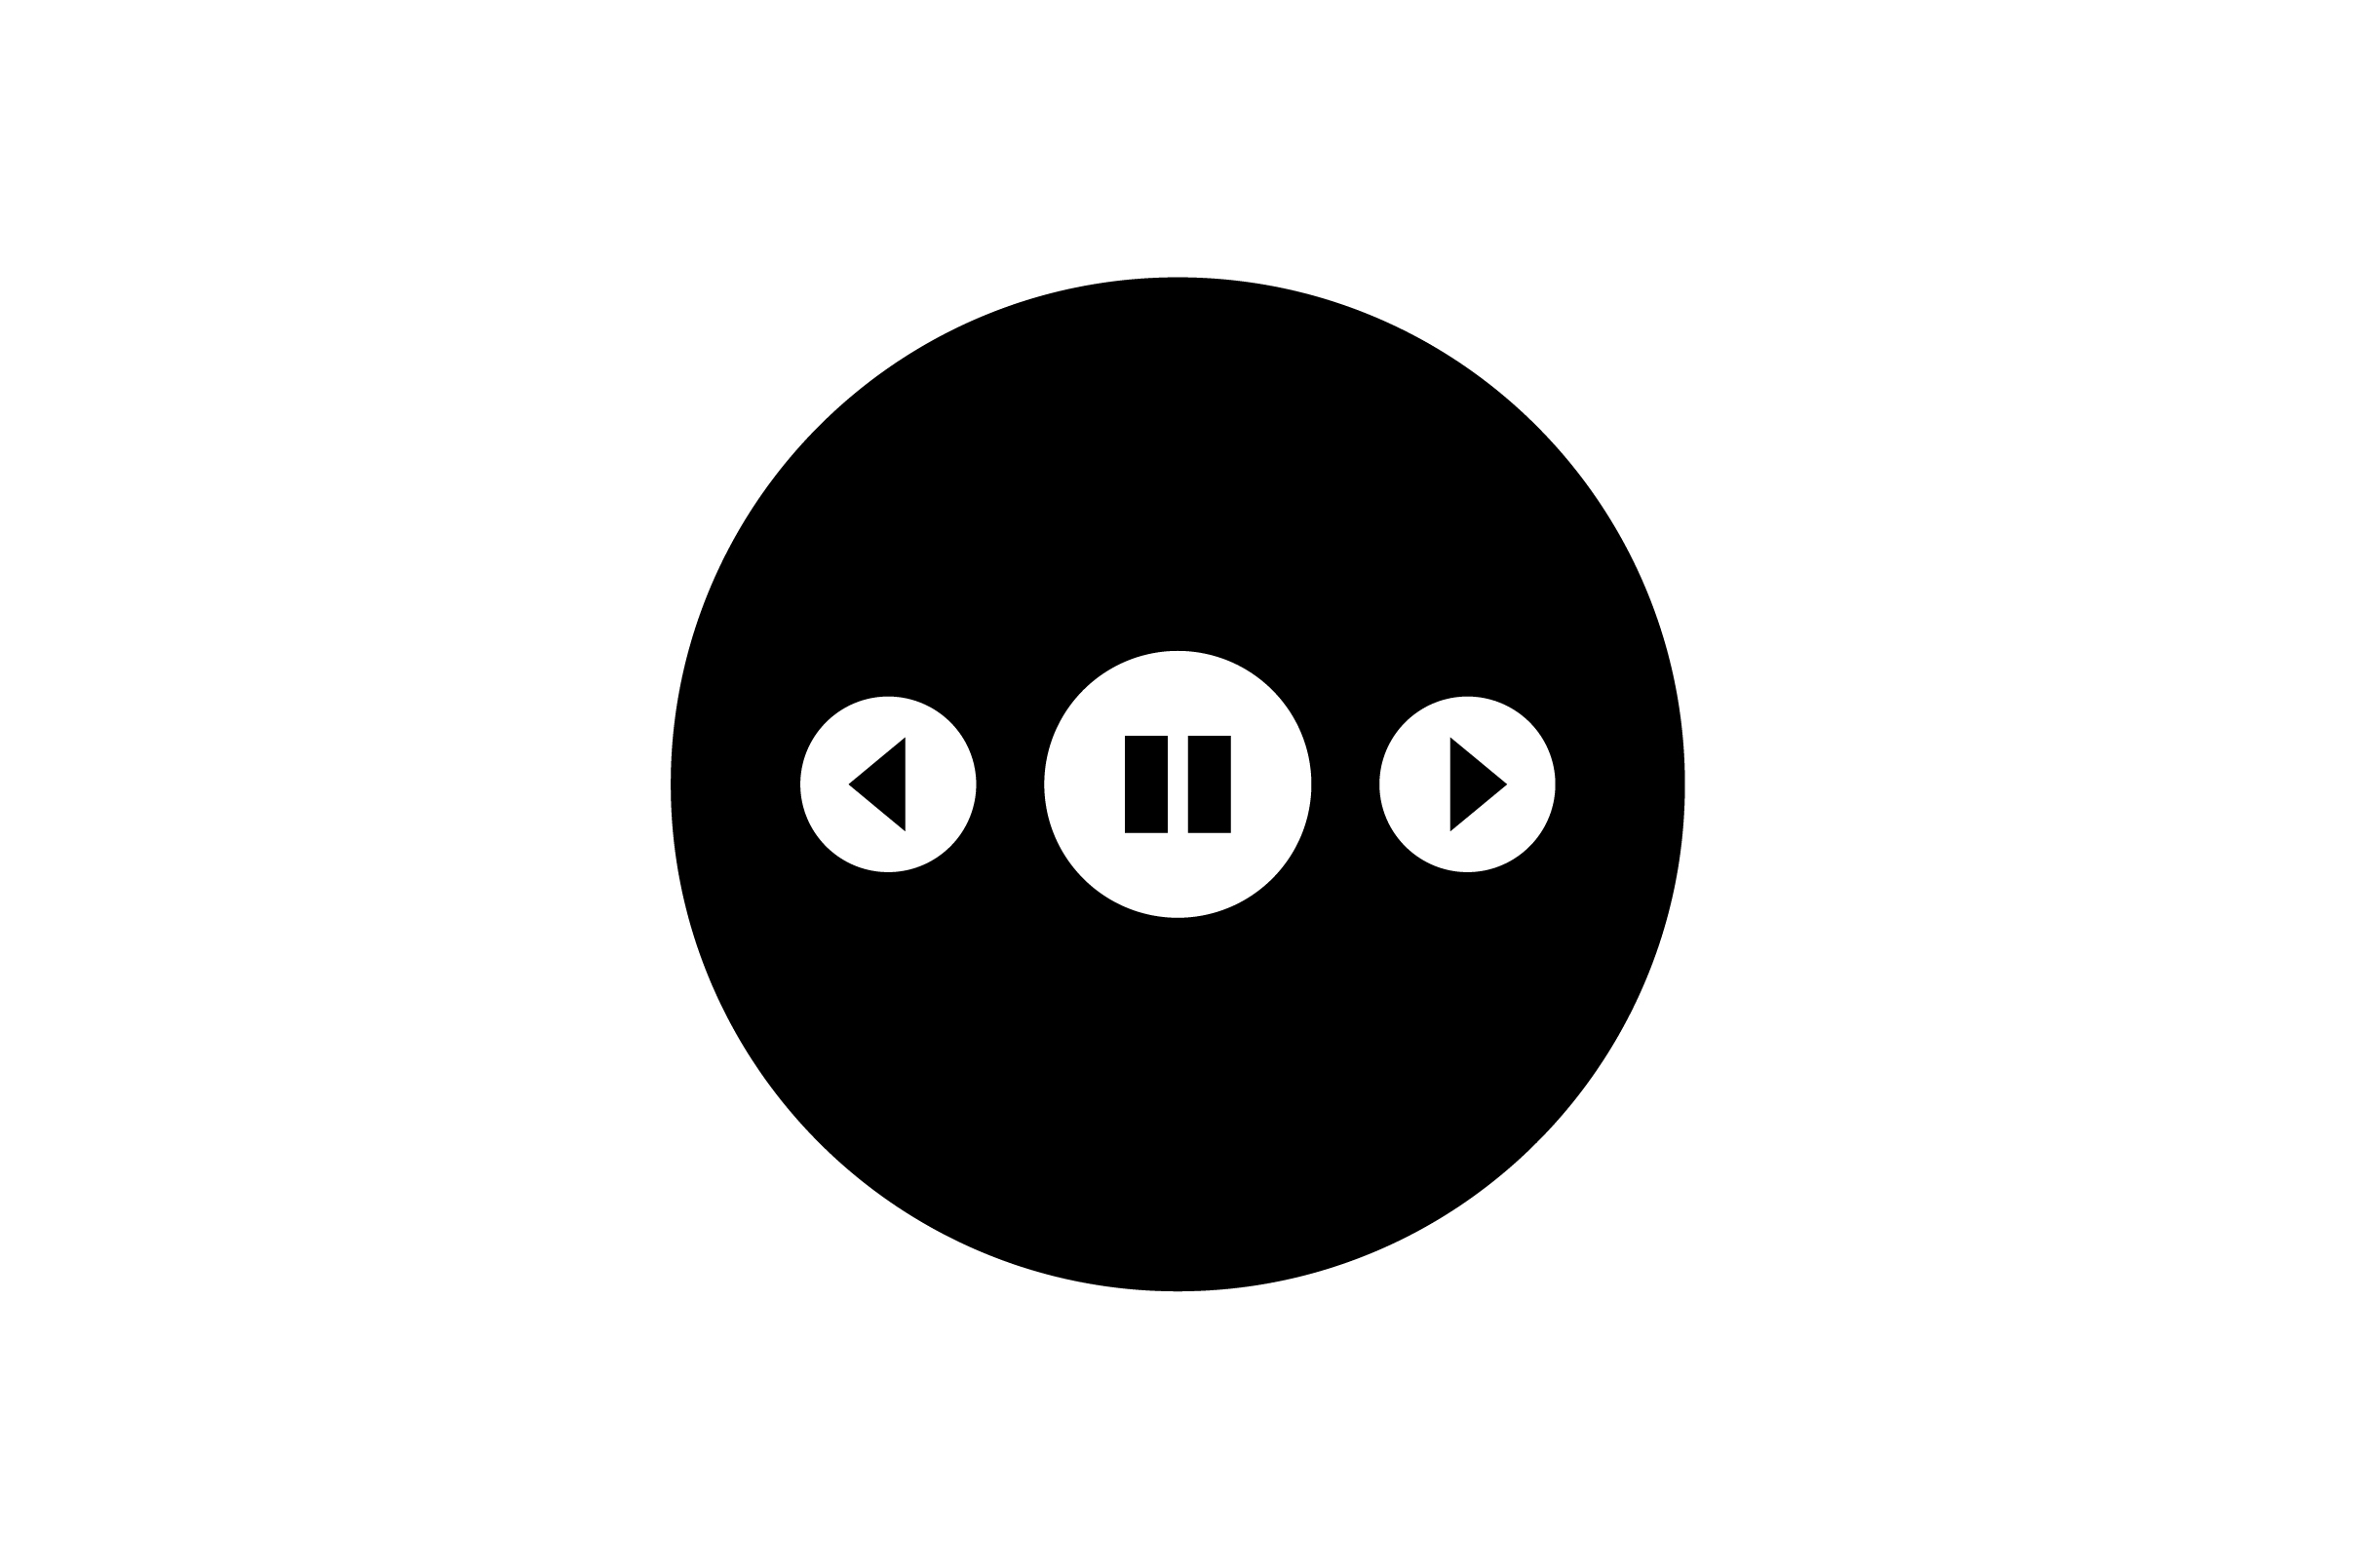 Download Free Media Player Controller Glyph Icon Graphic By Riduwan Molla for Cricut Explore, Silhouette and other cutting machines.